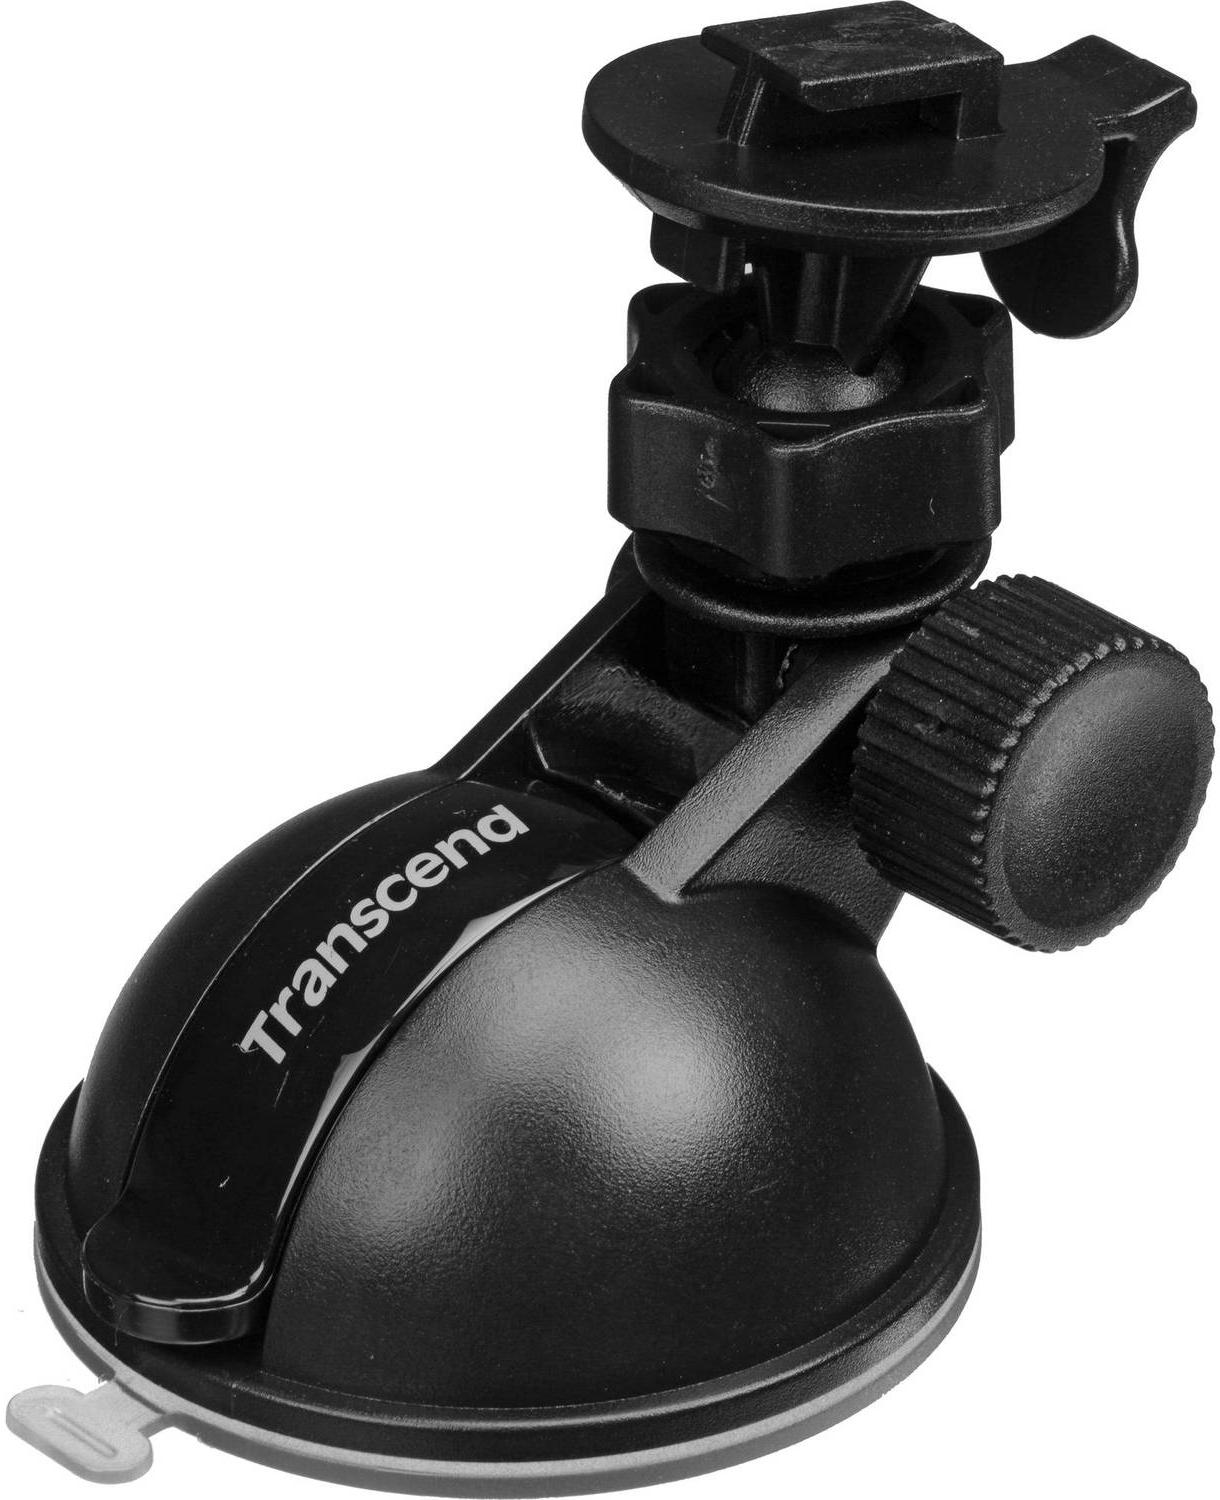 https://static.bhphotovideo.com/explora/sites/default/files/03transcend-suction-mount-for-car-video-recorder-series-cameras.jpg